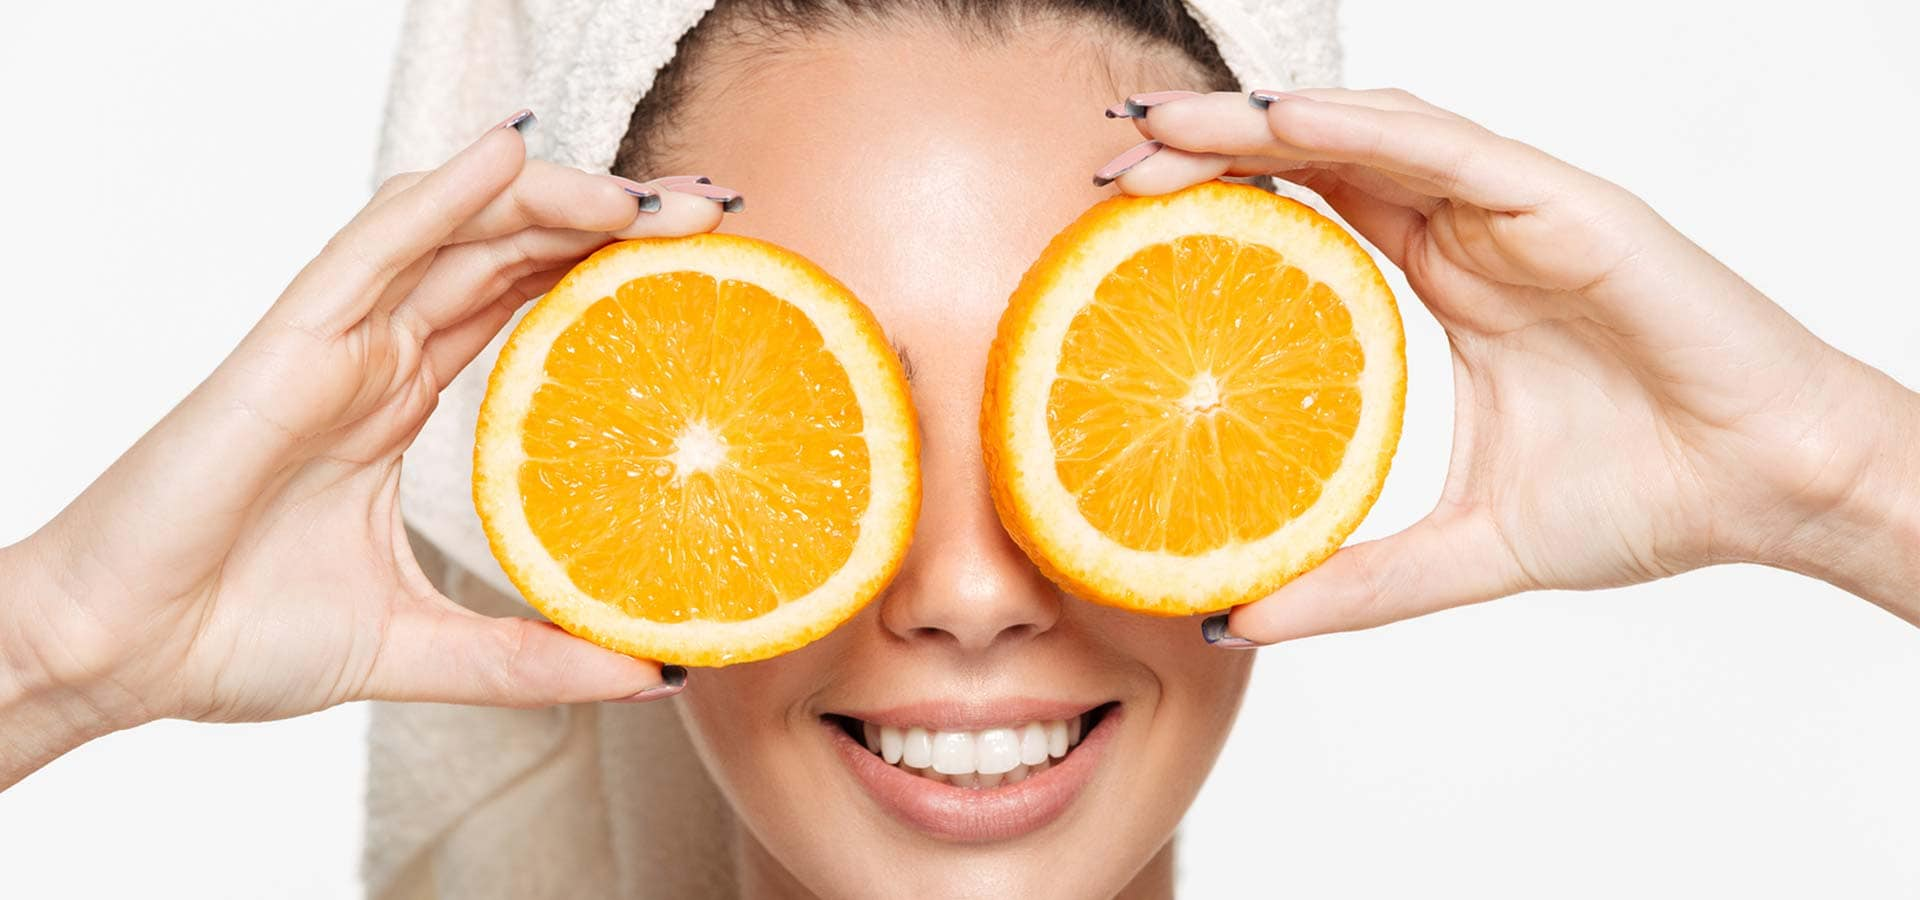 Topical Vitamin C – Benefits and Uses